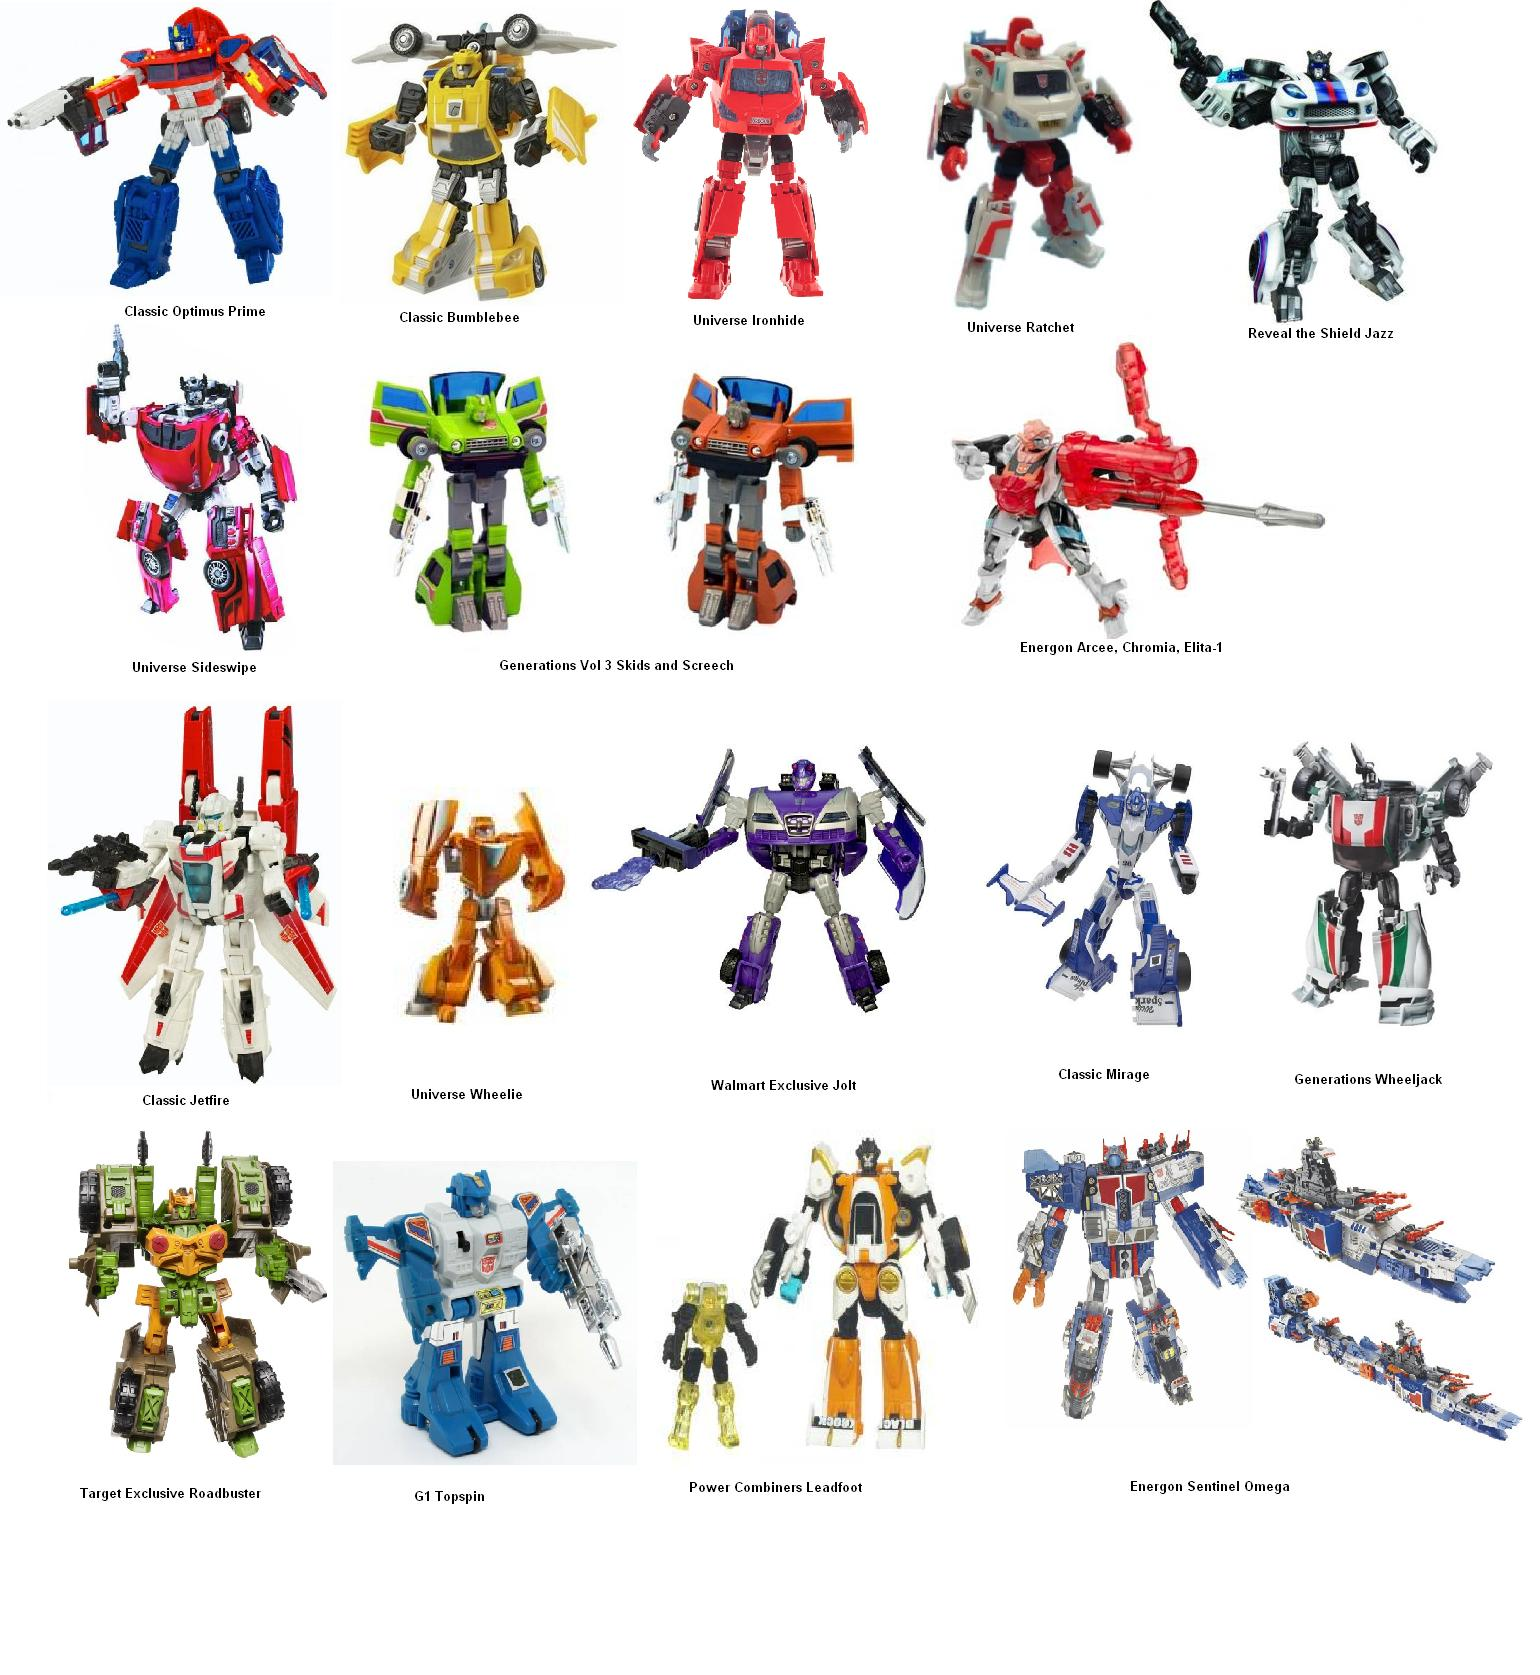 What are the names of the transformers